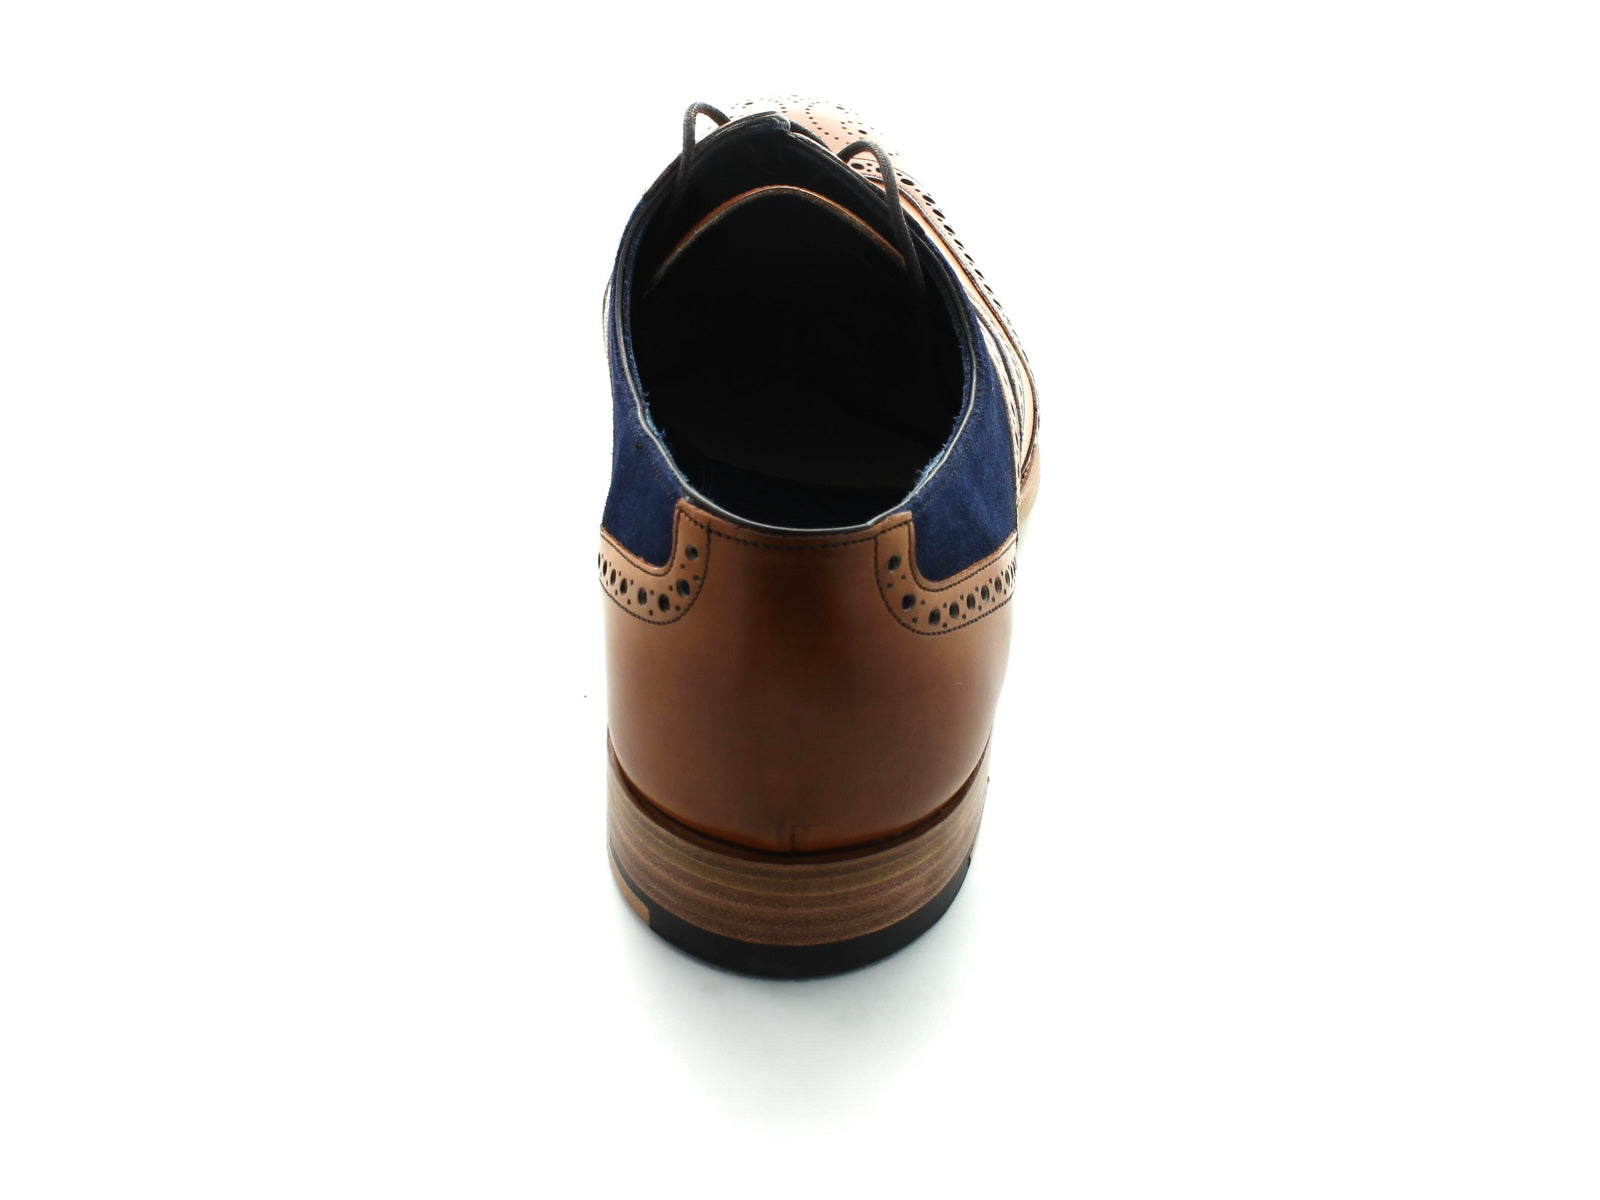 Barker Mc Clean in Cedar Calf and Navy Suede back view